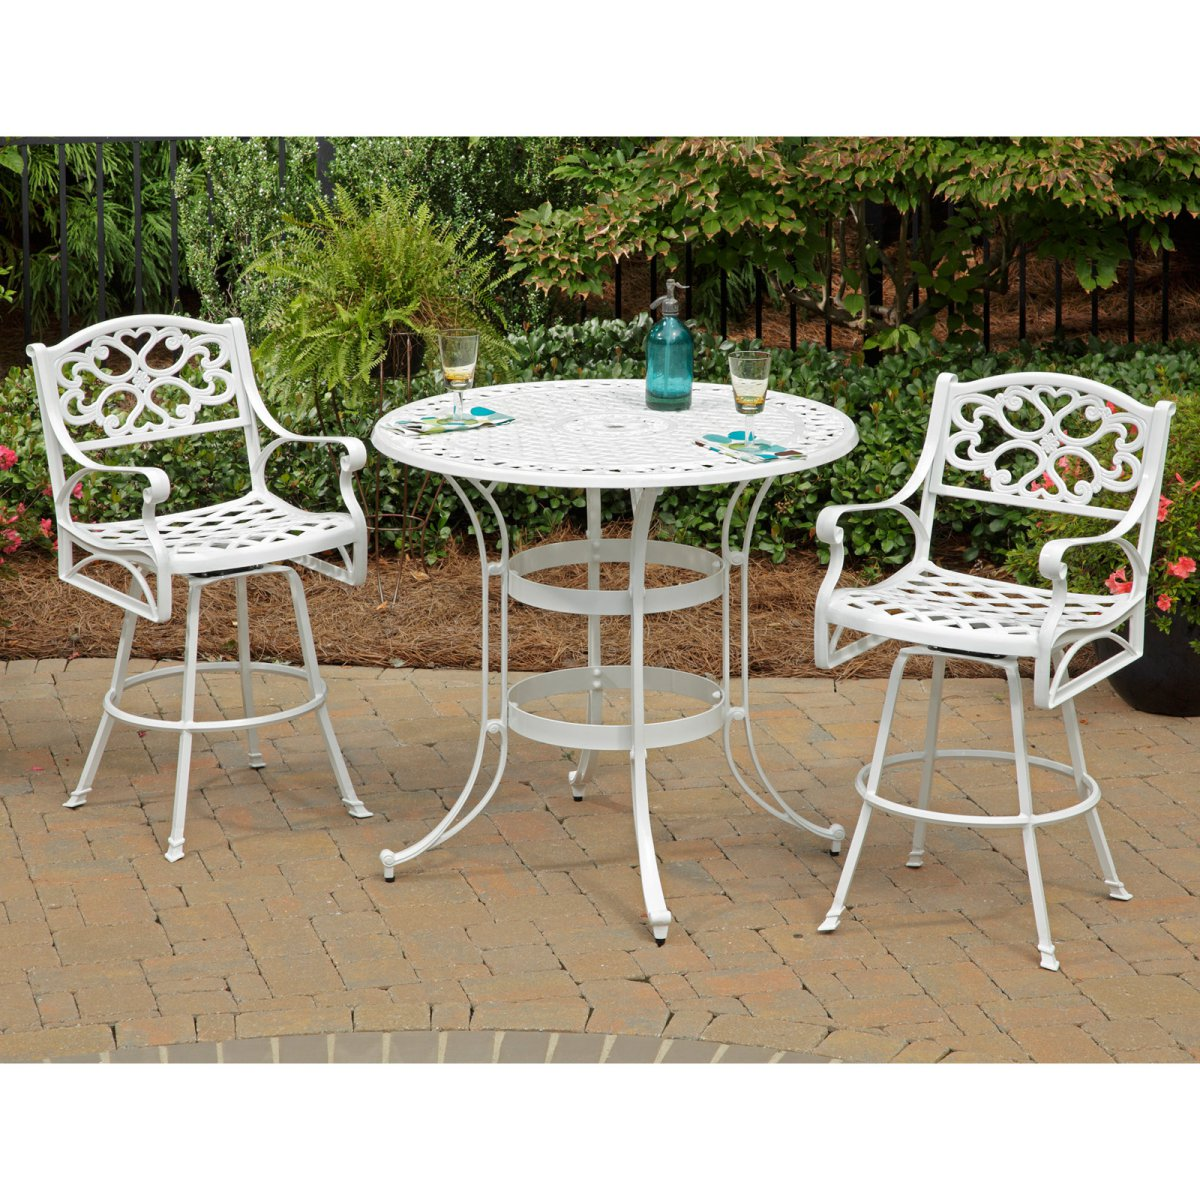 White Bistro Patio Set